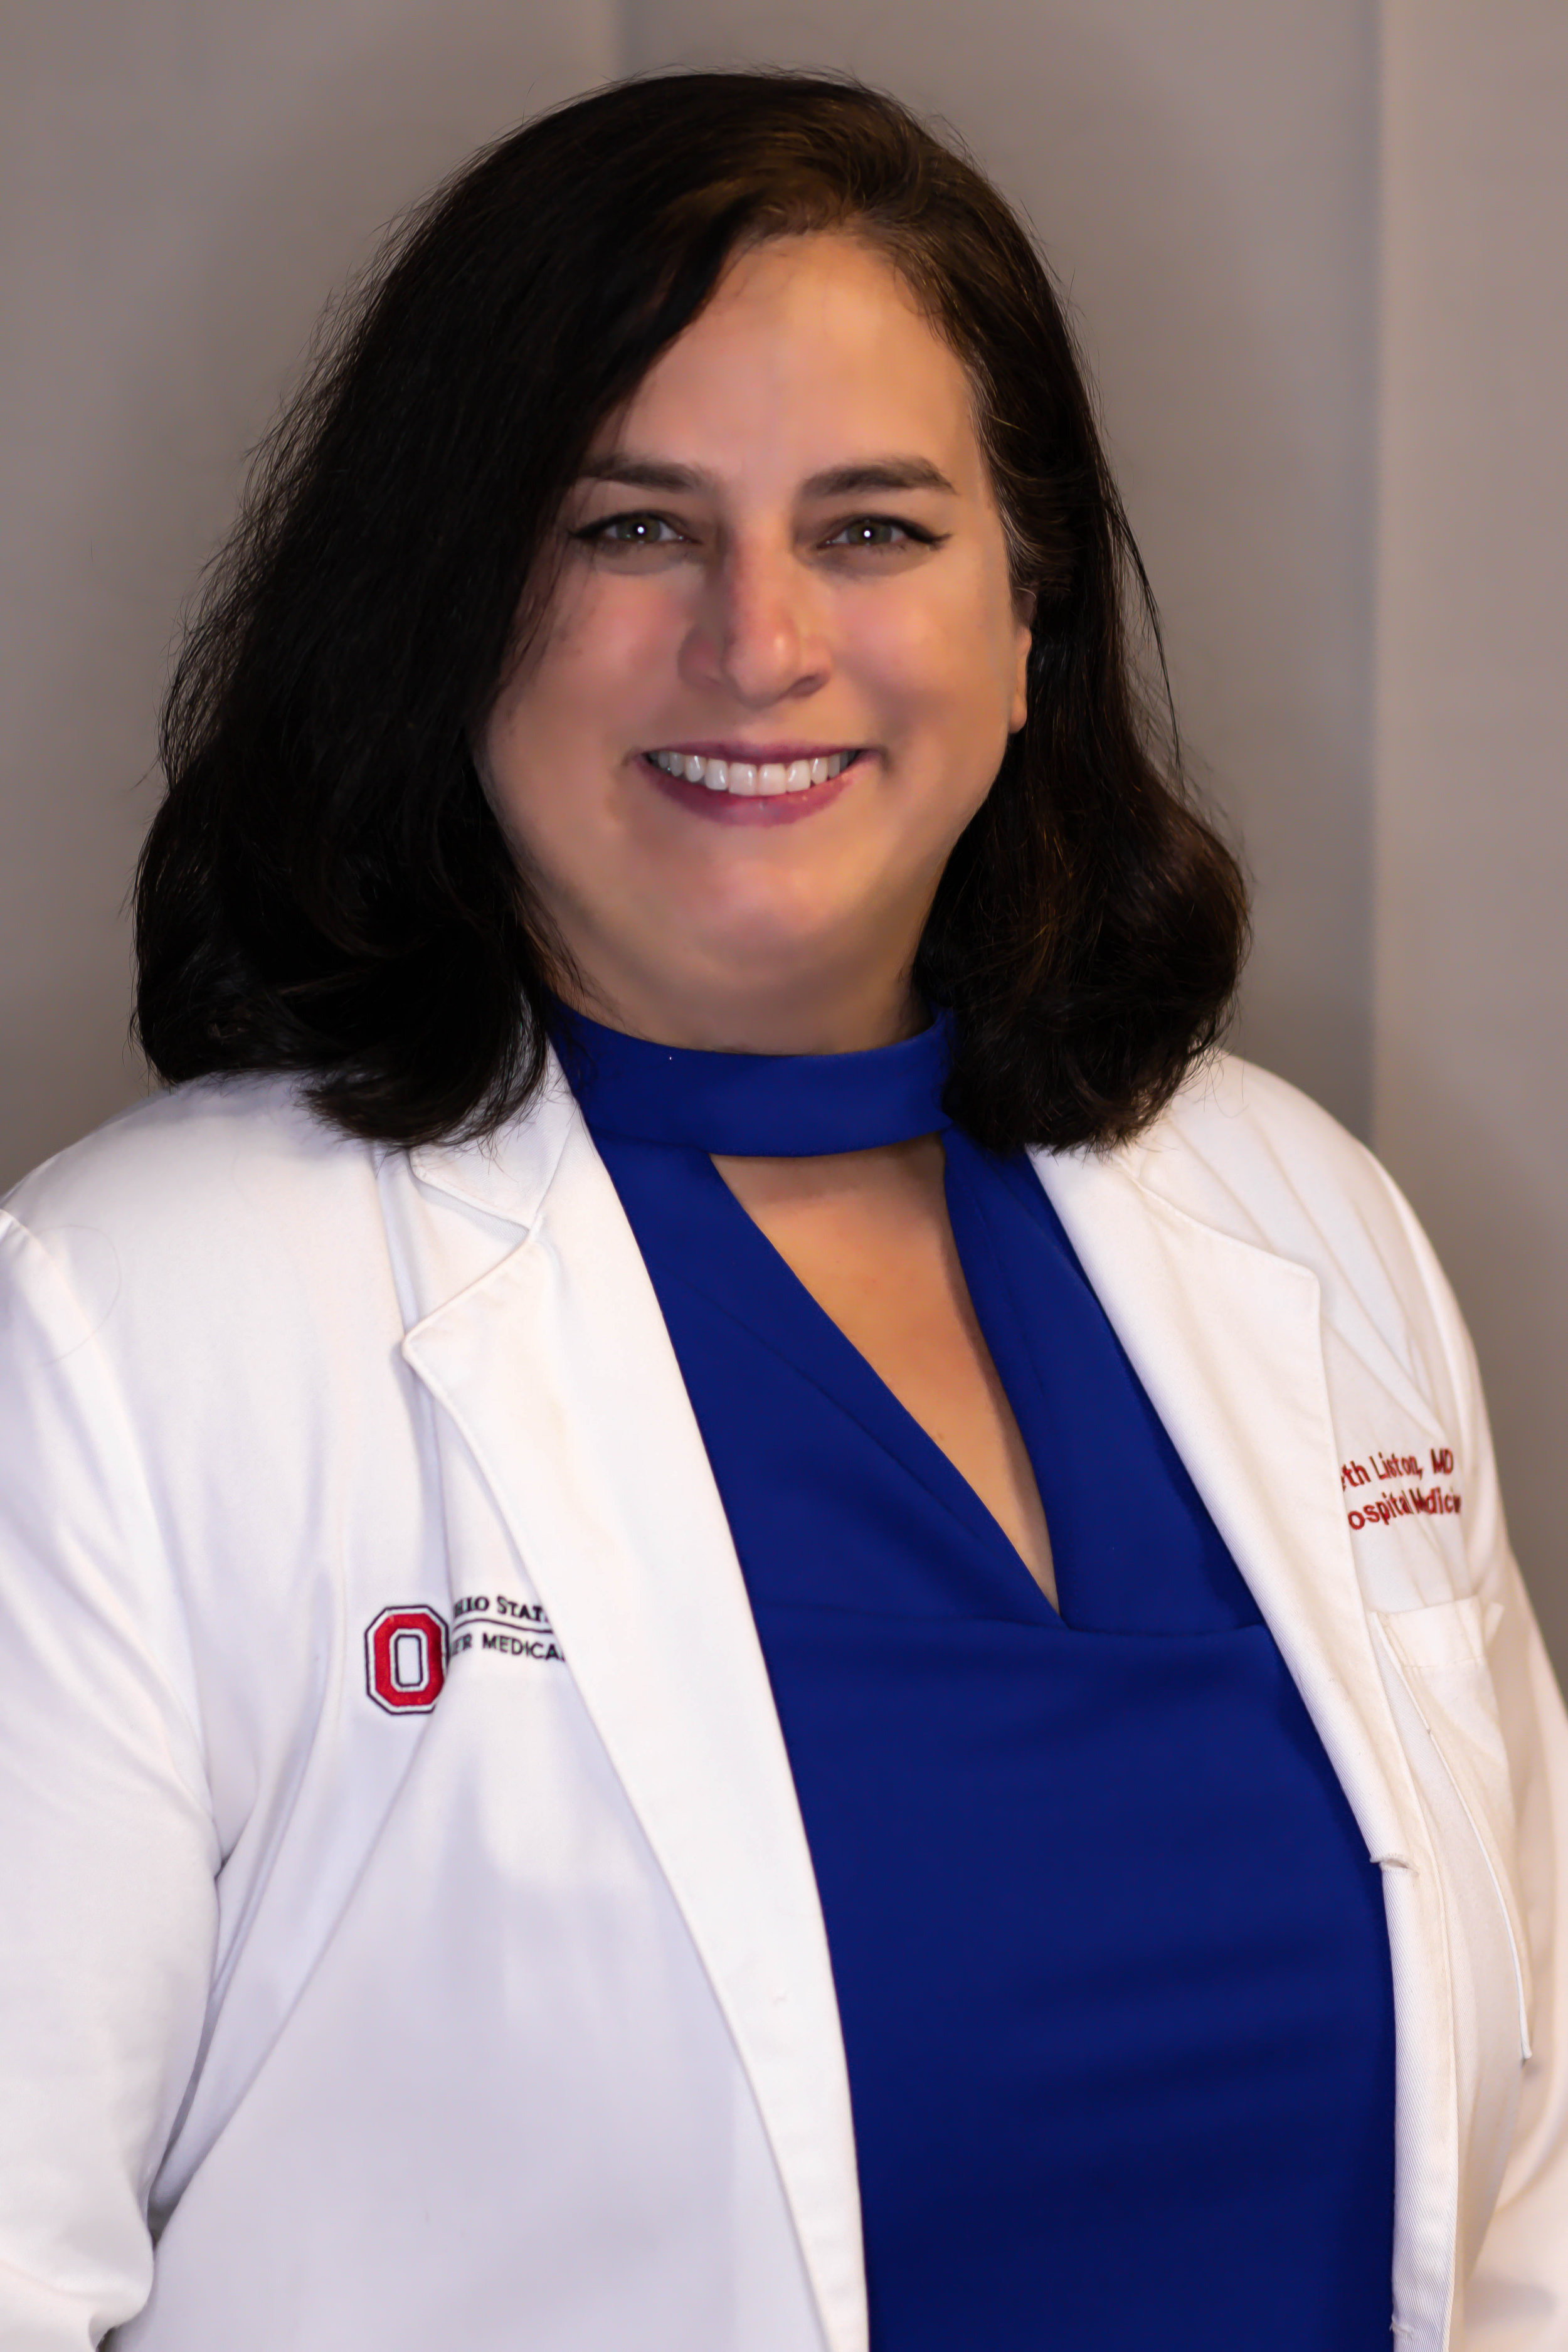 Dr. Beth Liston, hospitalist and pediatrician, CMA President-Elect